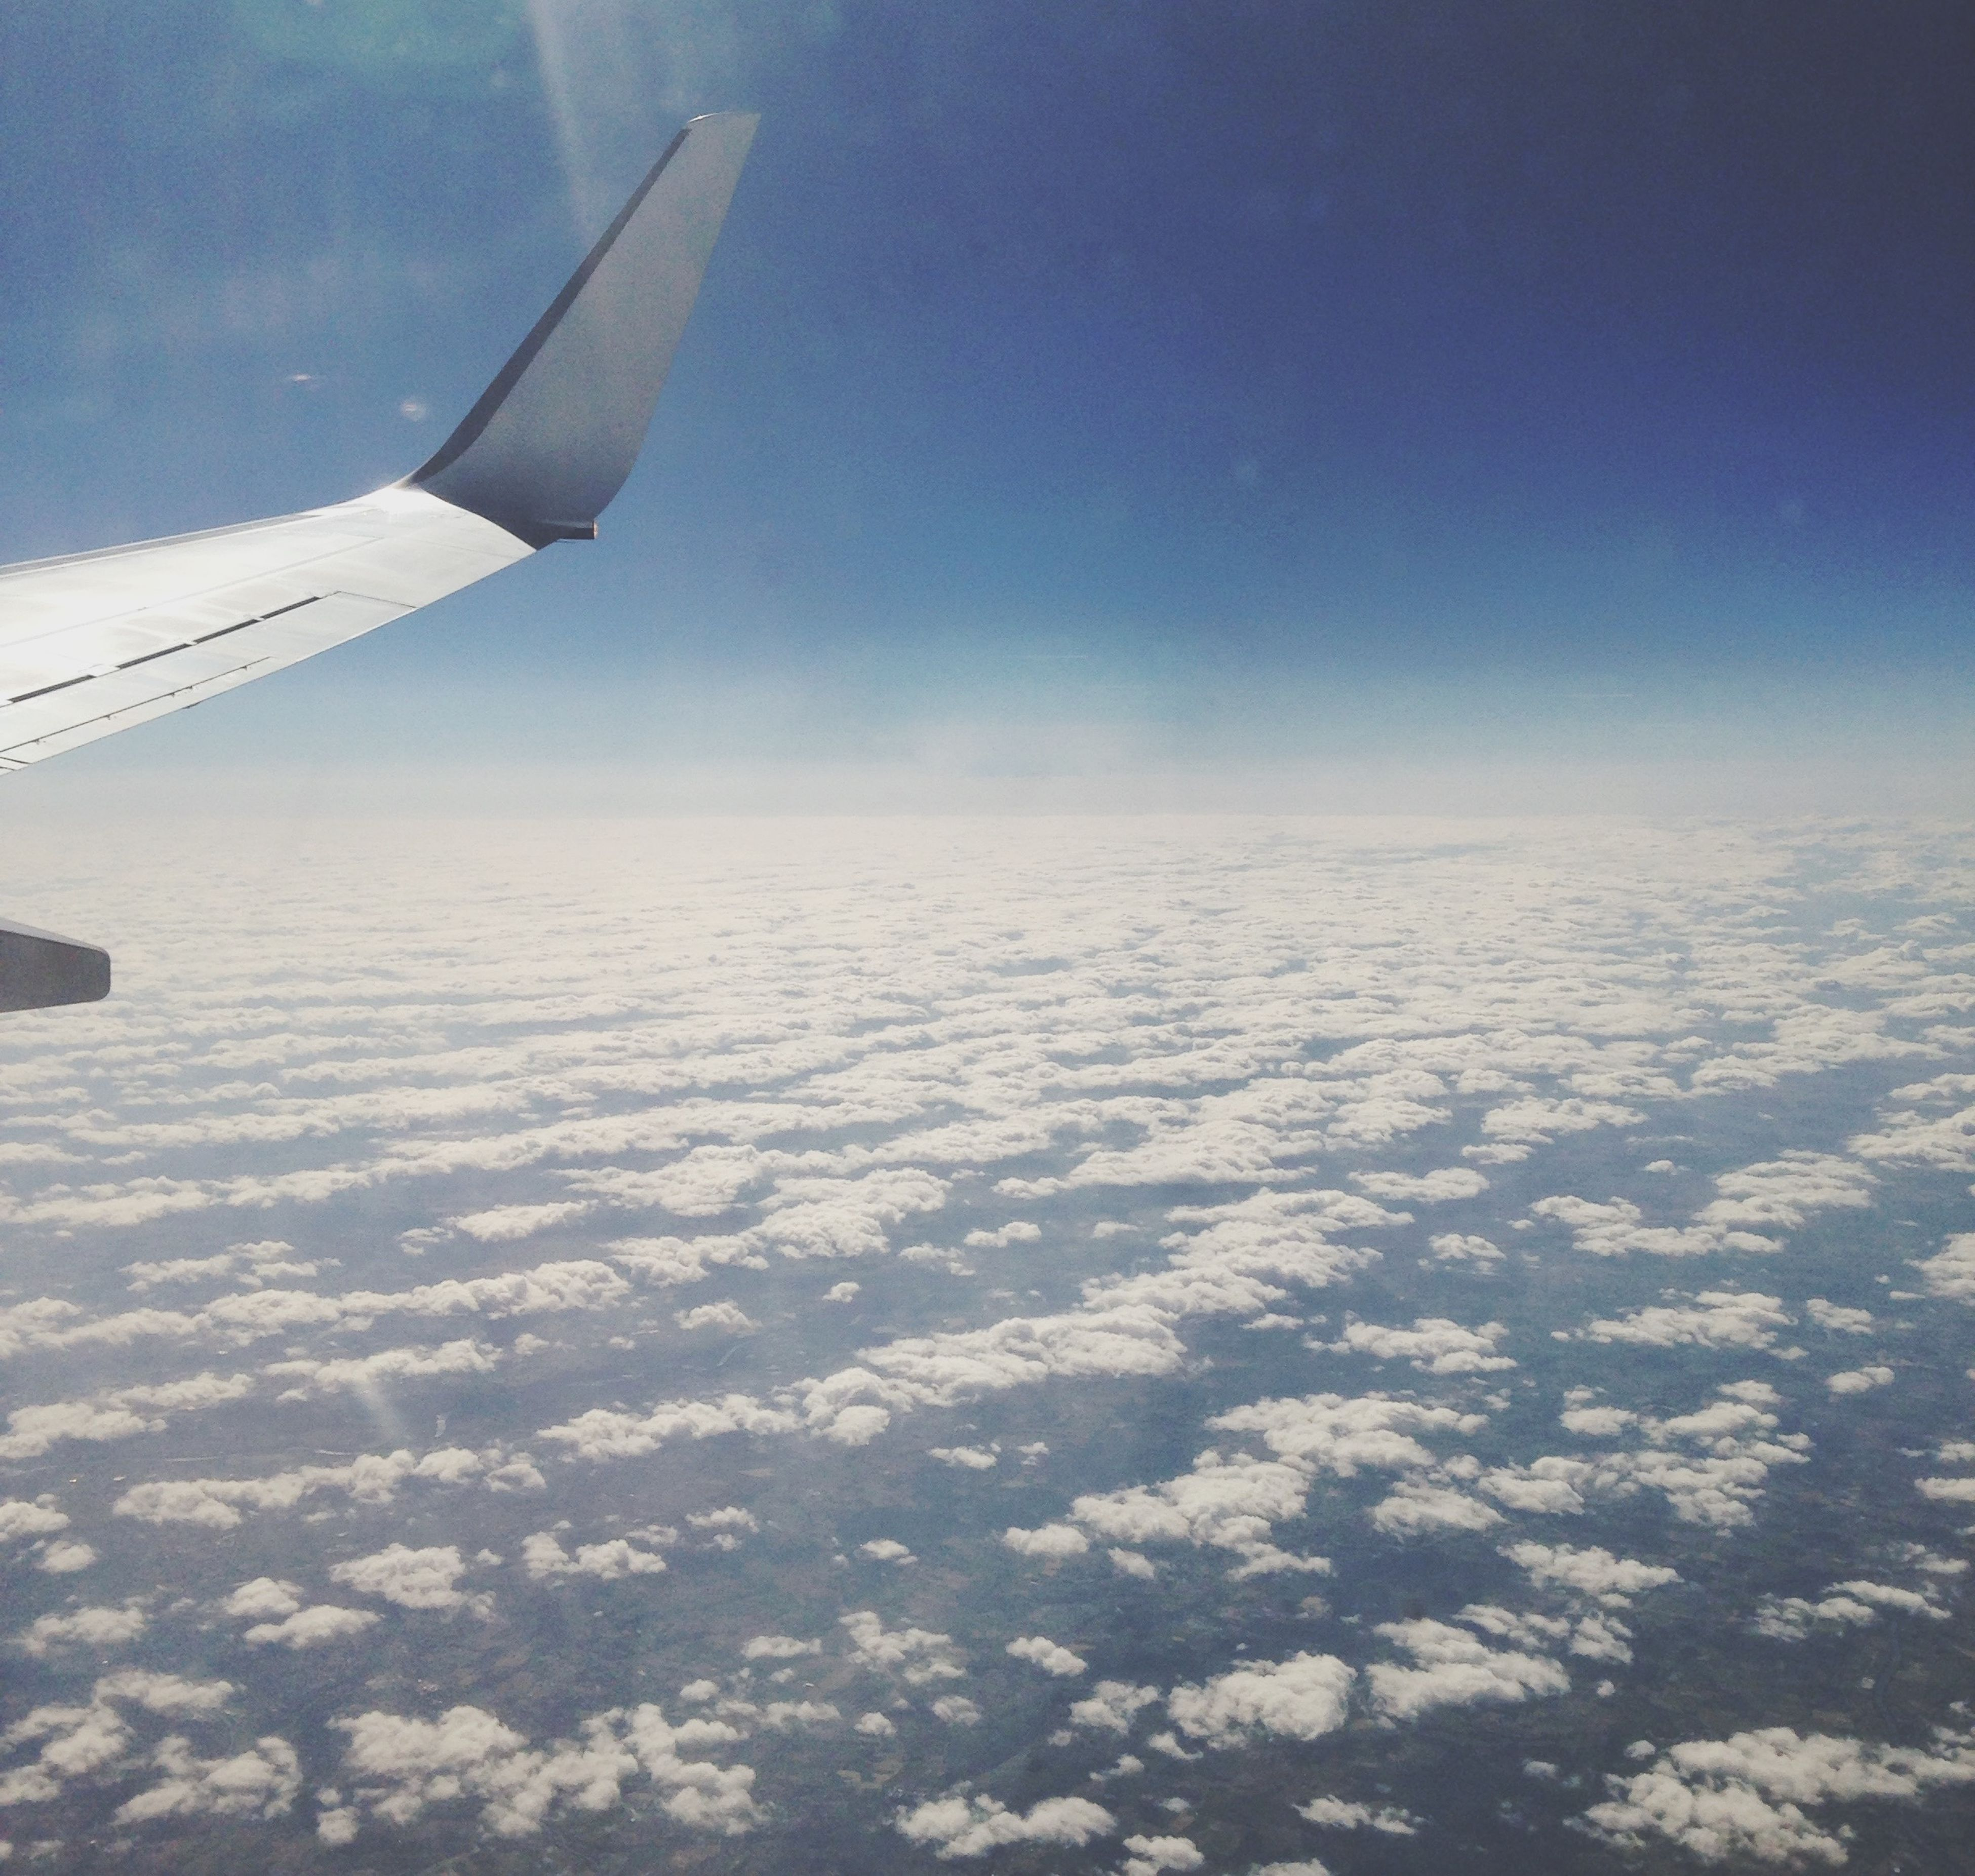 flying, transportation, airplane, air vehicle, aircraft wing, sky, mode of transport, beauty in nature, snow, scenics, nature, landscape, part of, white color, winter, aerial view, tranquil scene, blue, cropped, tranquility